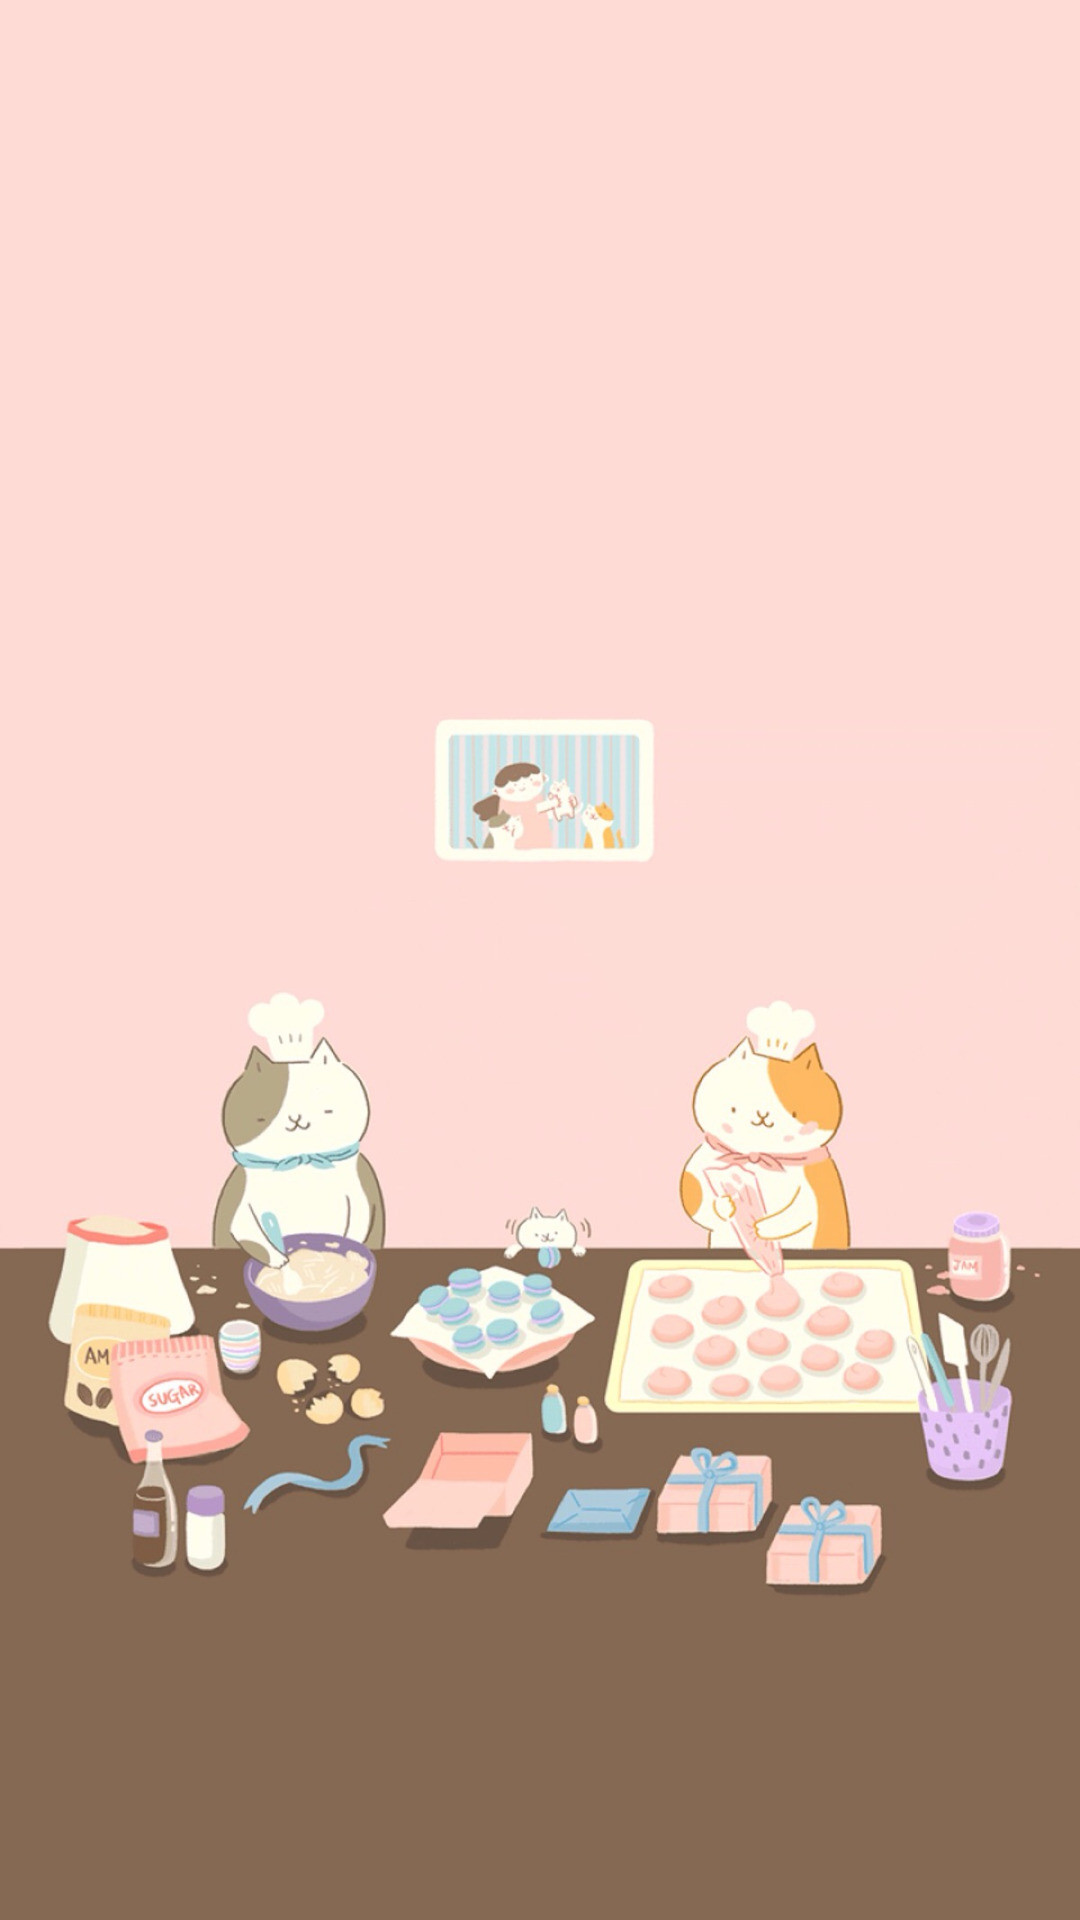 1080x1920 Neko Atsume Cat Family. Tap to see more Neko Atsume the cat wallpapers,  backgrounds